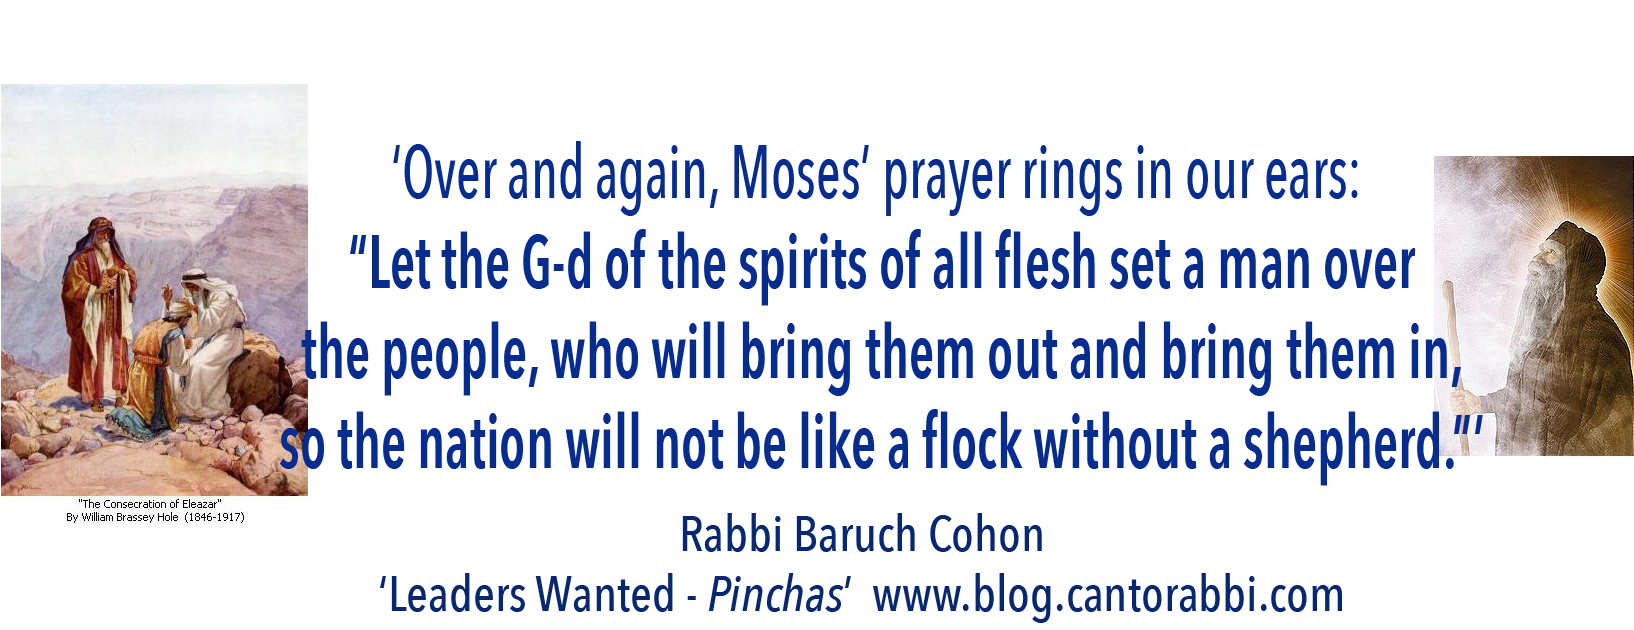 the life and times of rabbi baruchs g The prayer baruch sheamar describes and expresses different aspects of g-d's name -y-h-v-h the tefillah is divided into two parts the first part presents ten different aspects of g-d's name and the second part consists of a blessing.